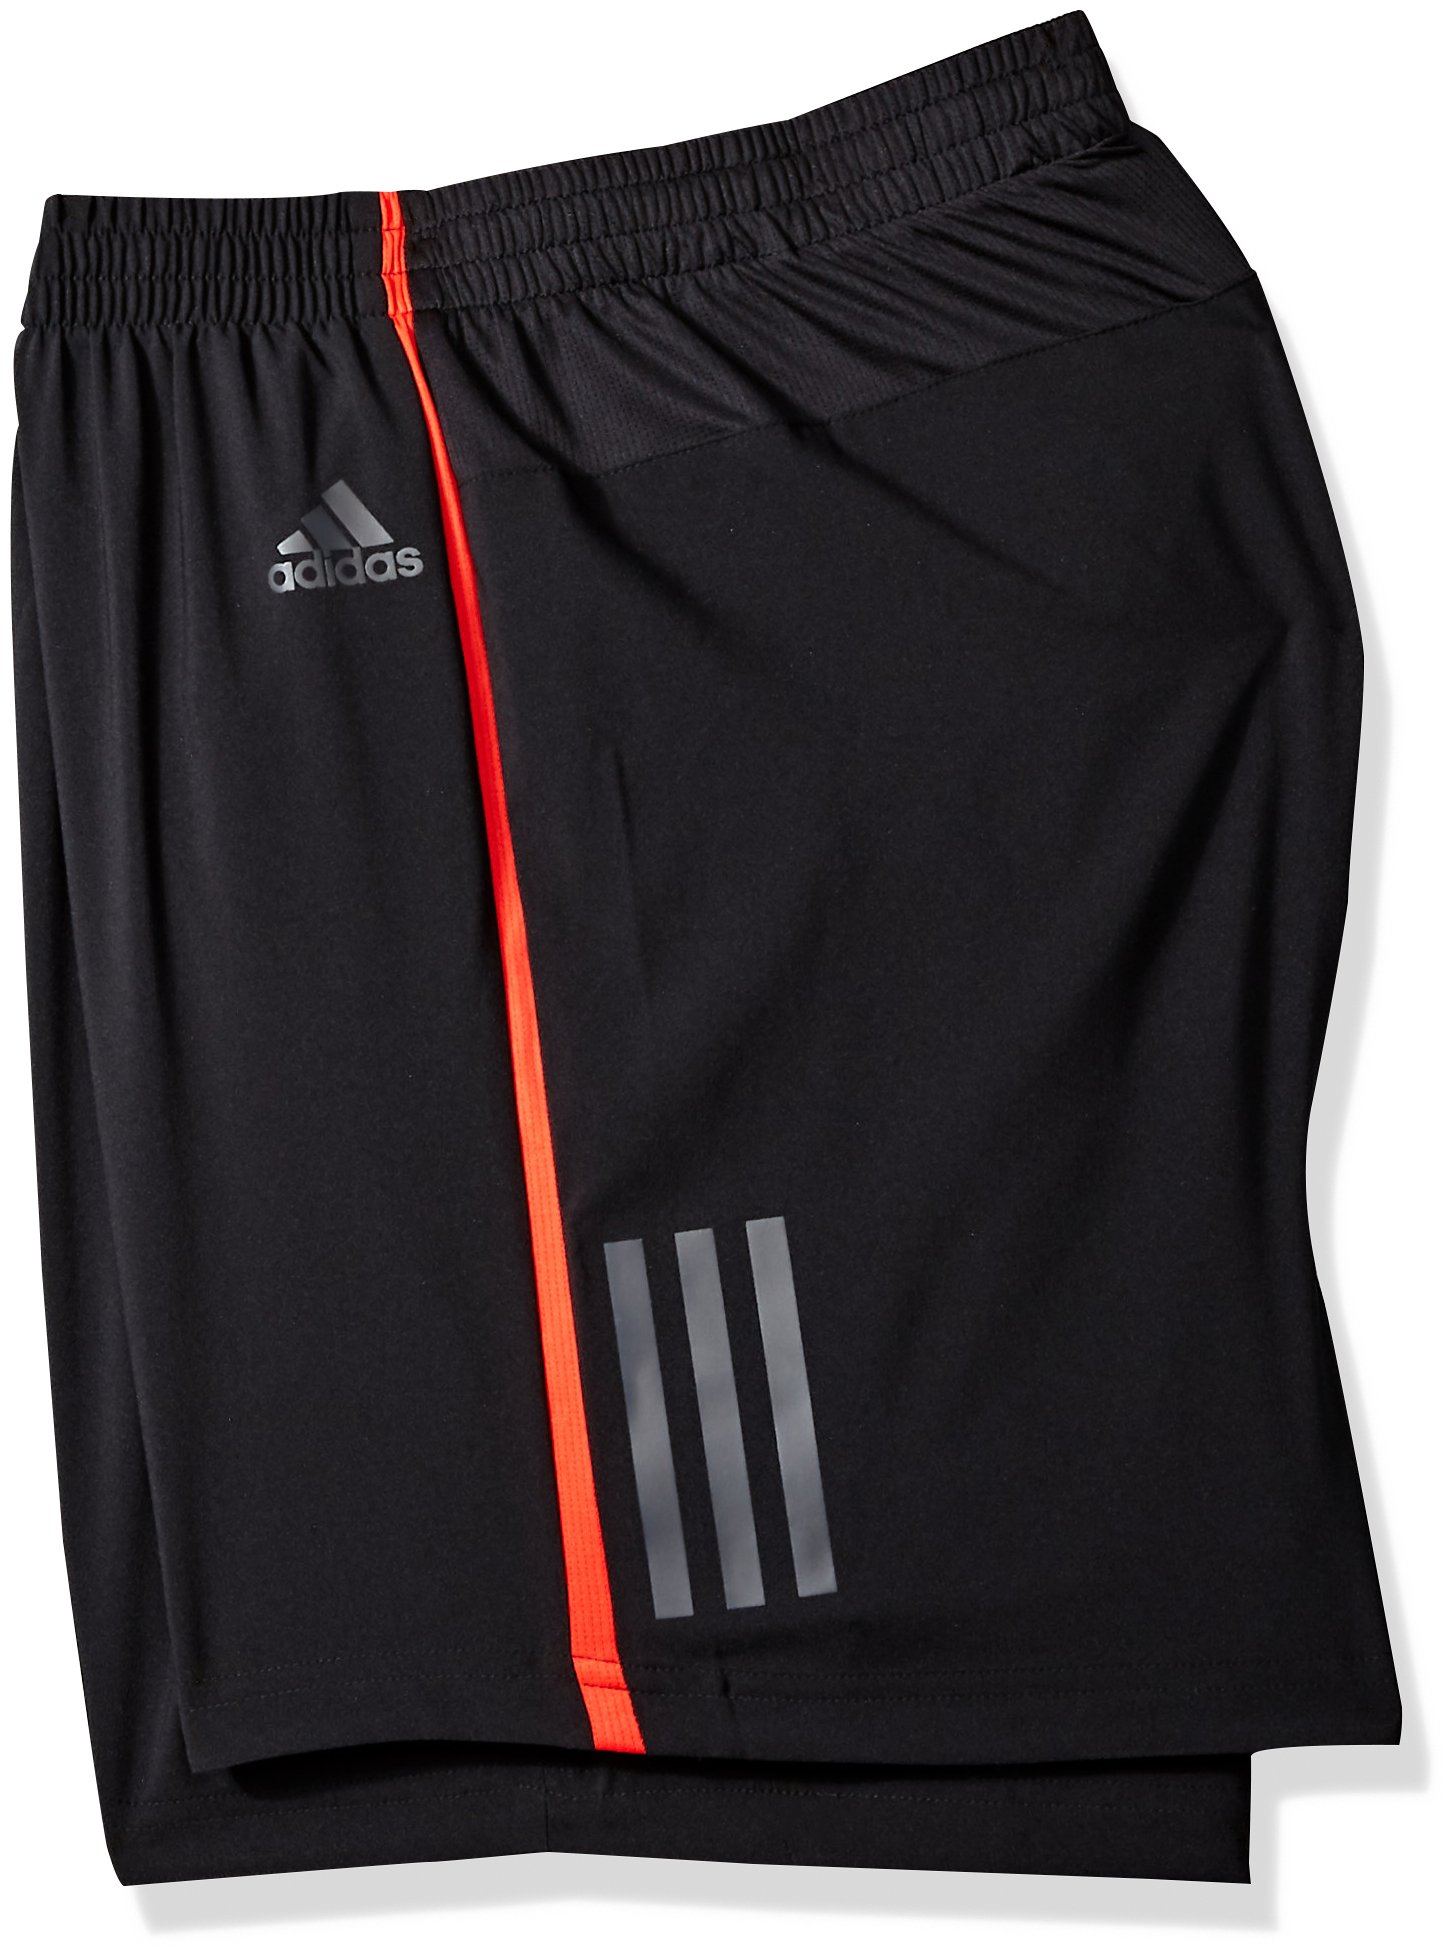 adidas Men's Running Response Shorts, Black/Hi-Res Red, X-Large/5'' by adidas (Image #2)